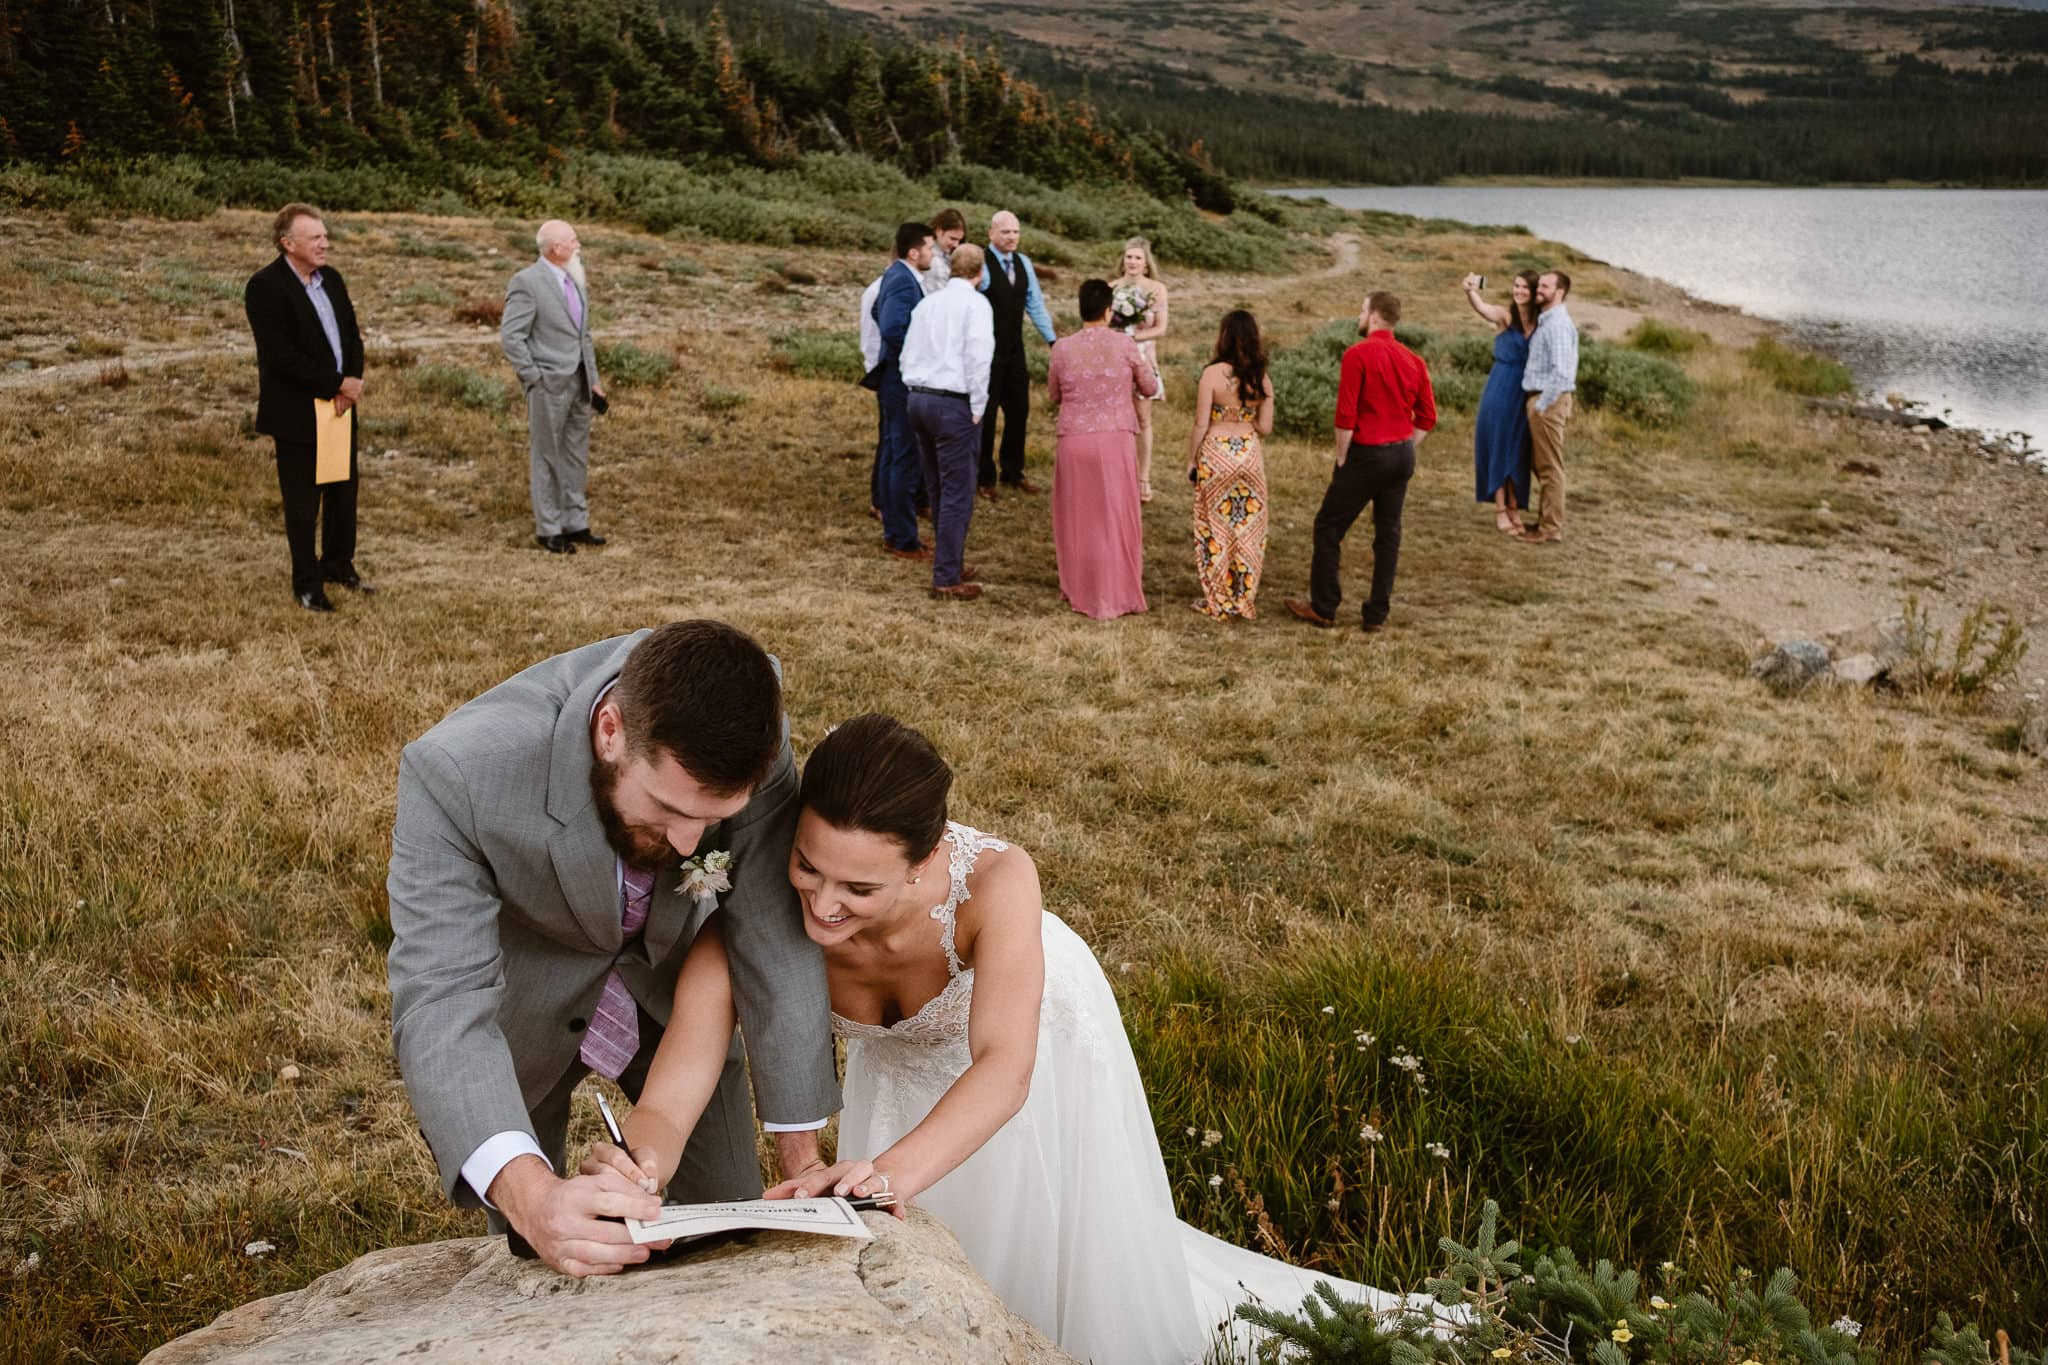 Colorado mountain elopement photographer, alpine lake adventure wedding, Boulder wedding photographer, outdoor ceremony, bride and groom signing marriage license